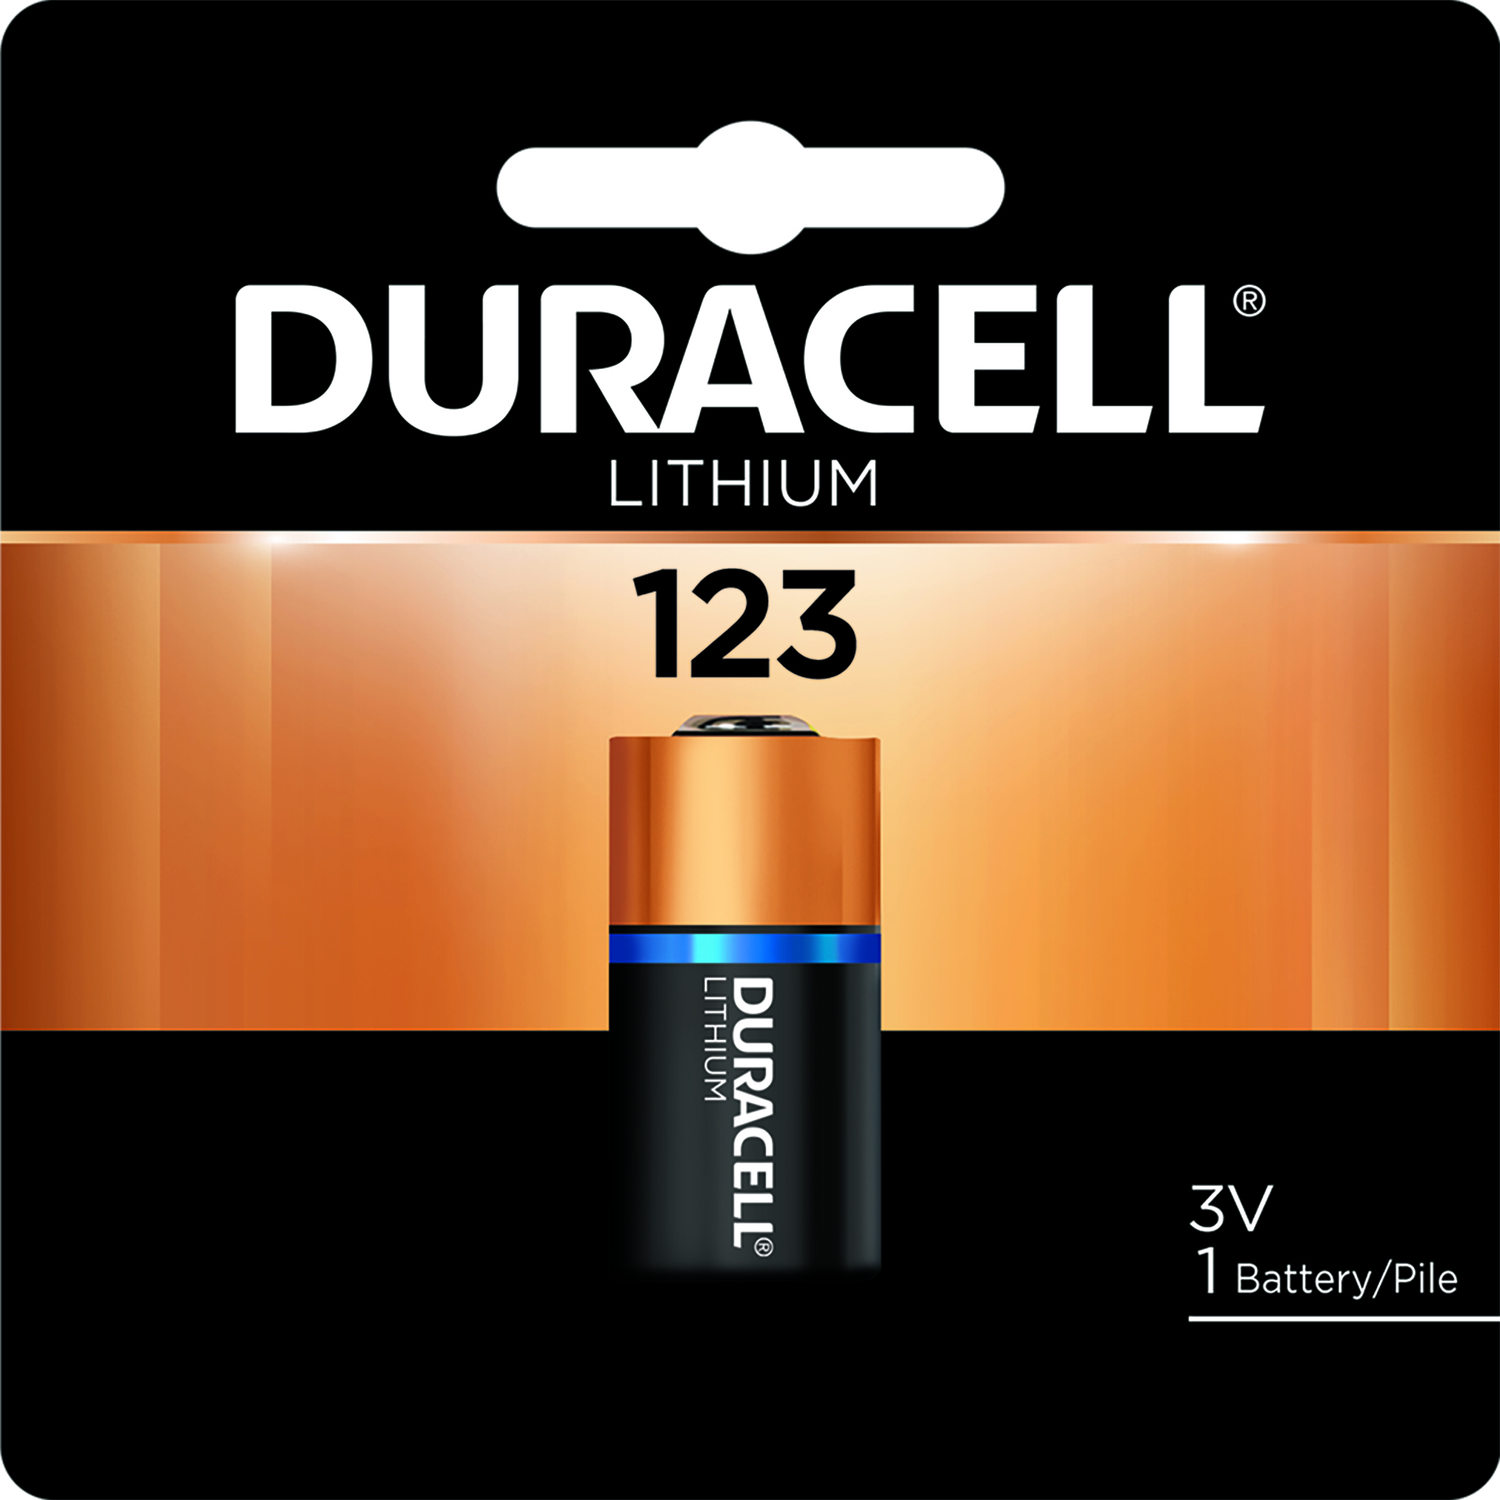 Duracell  Lithium  123  Camera Battery  DL123ABPK  1 pk